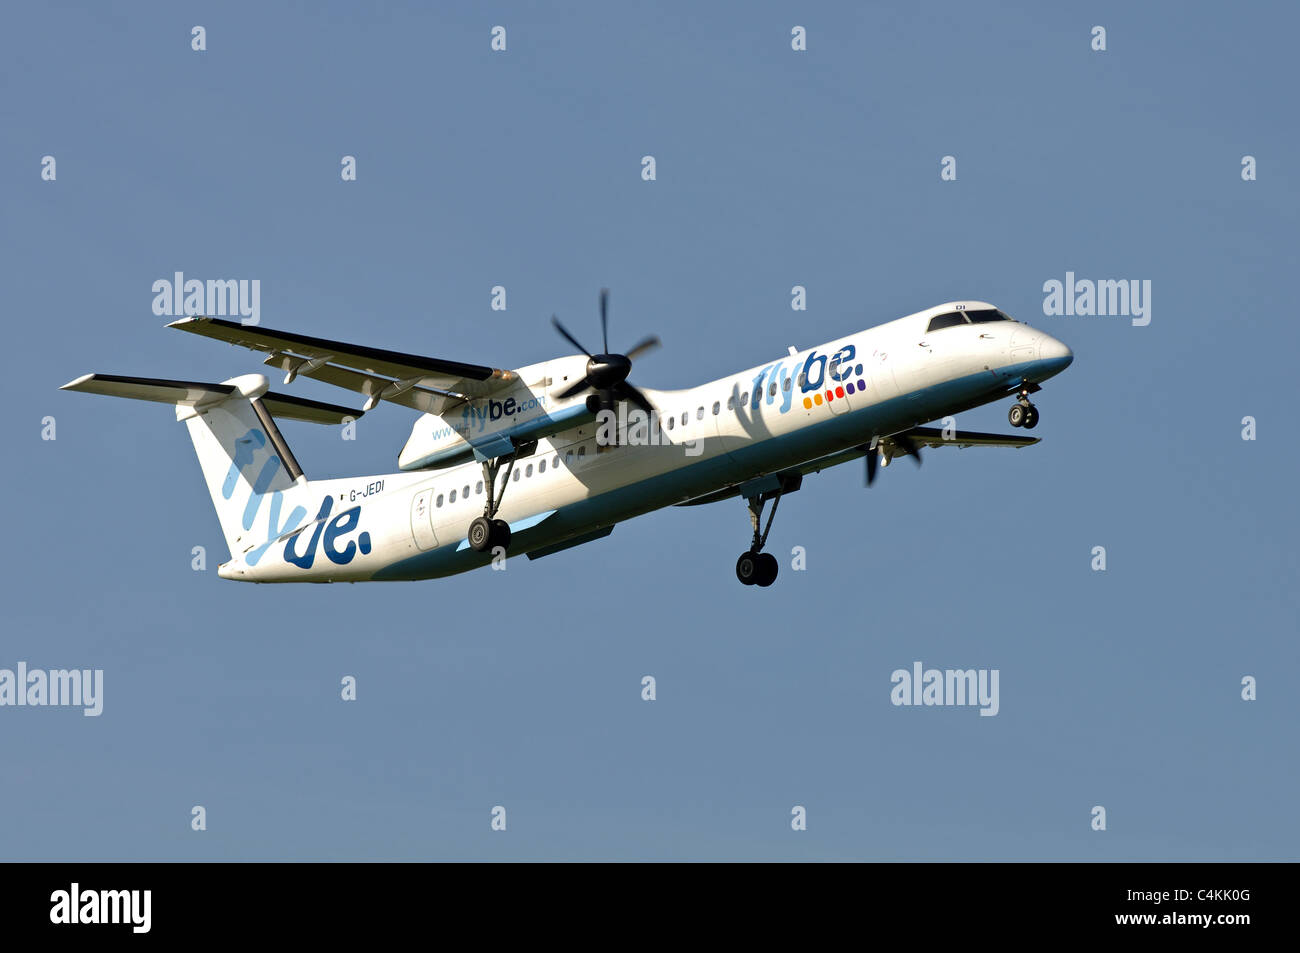 Flybe Dash 8 aircraft approaching Birmingham Airport, UK - Stock Image